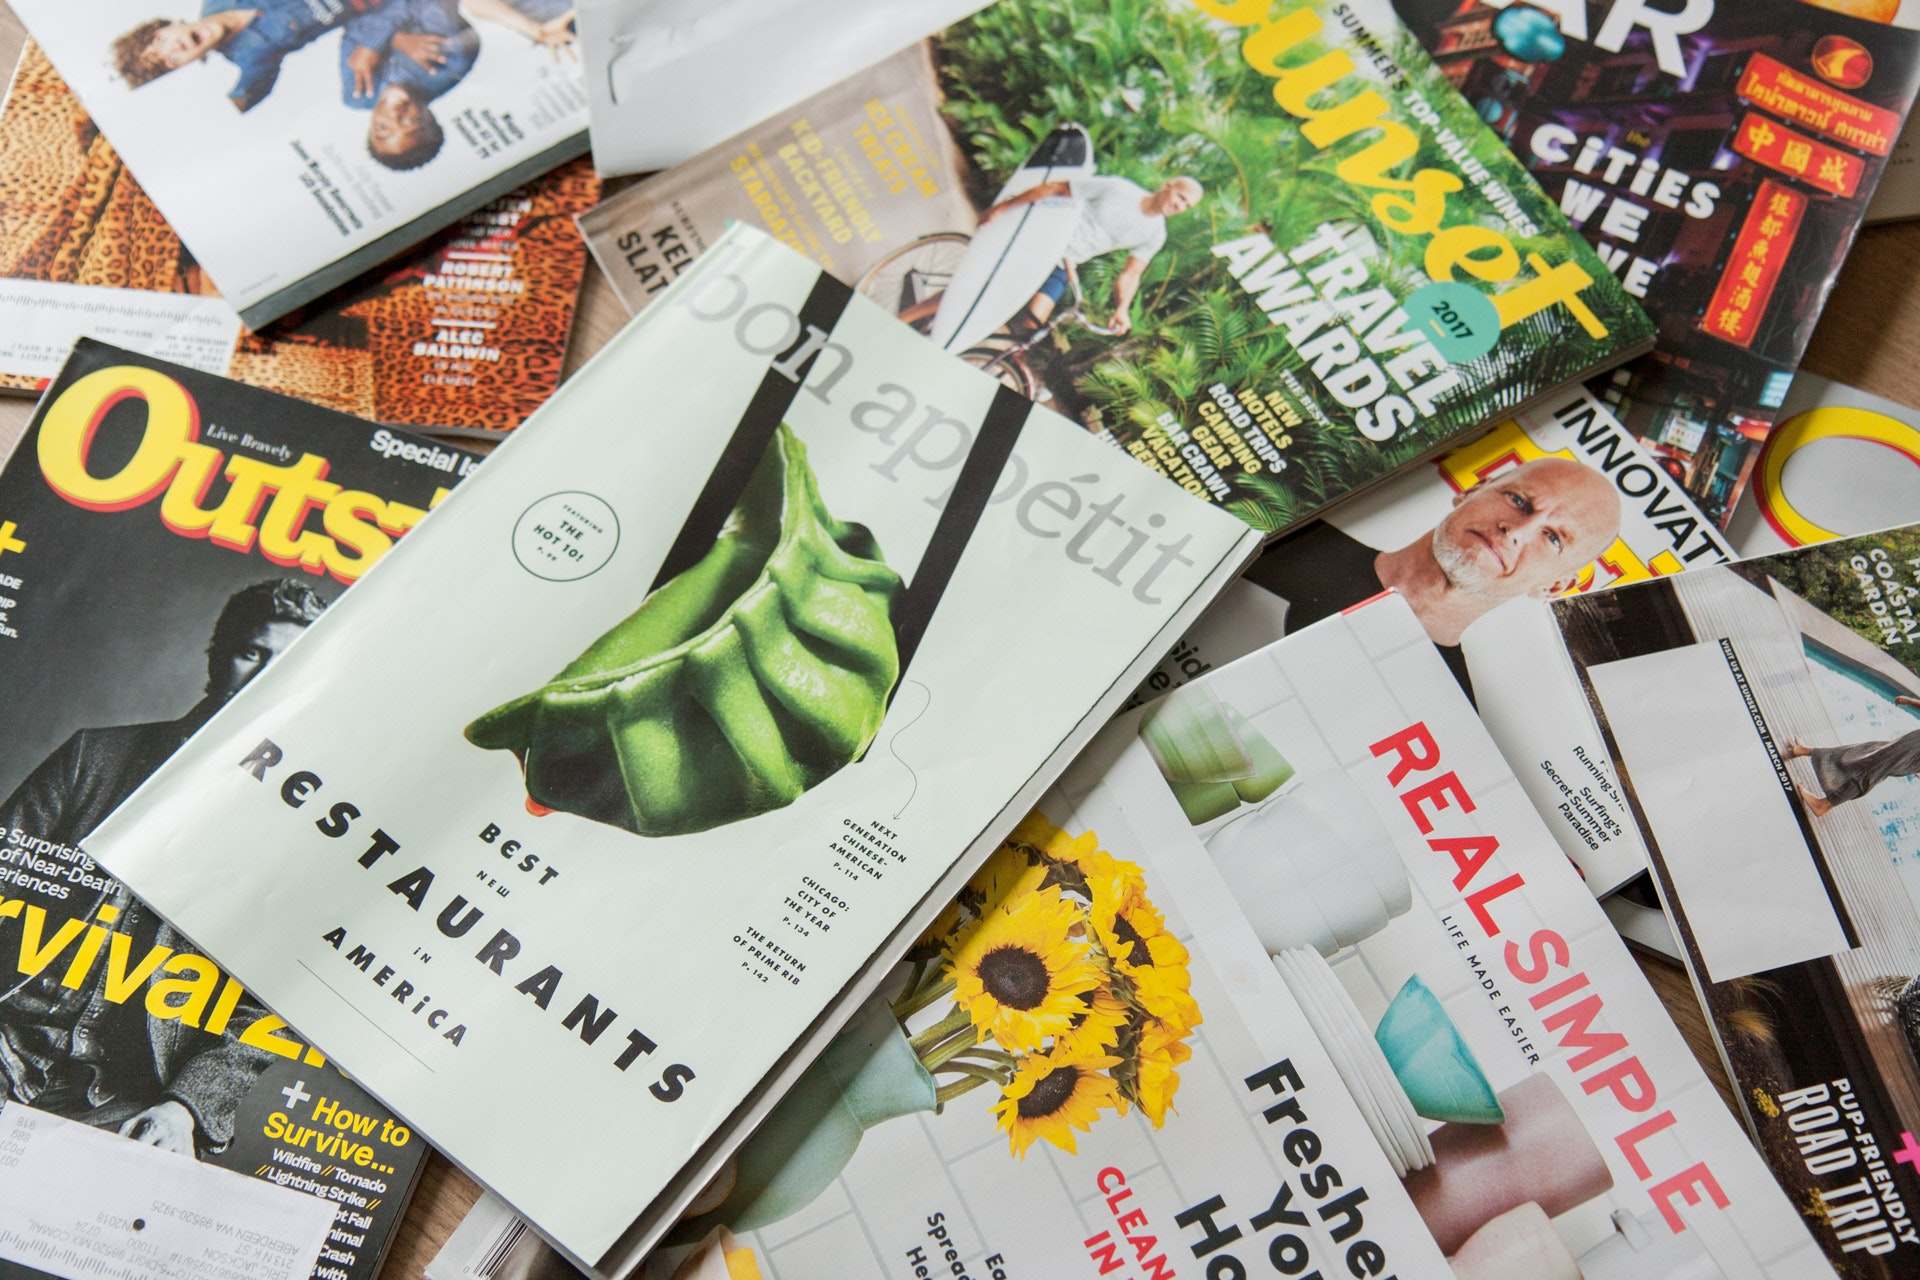 3 Things to Consider When Designing Print Marketing Materials